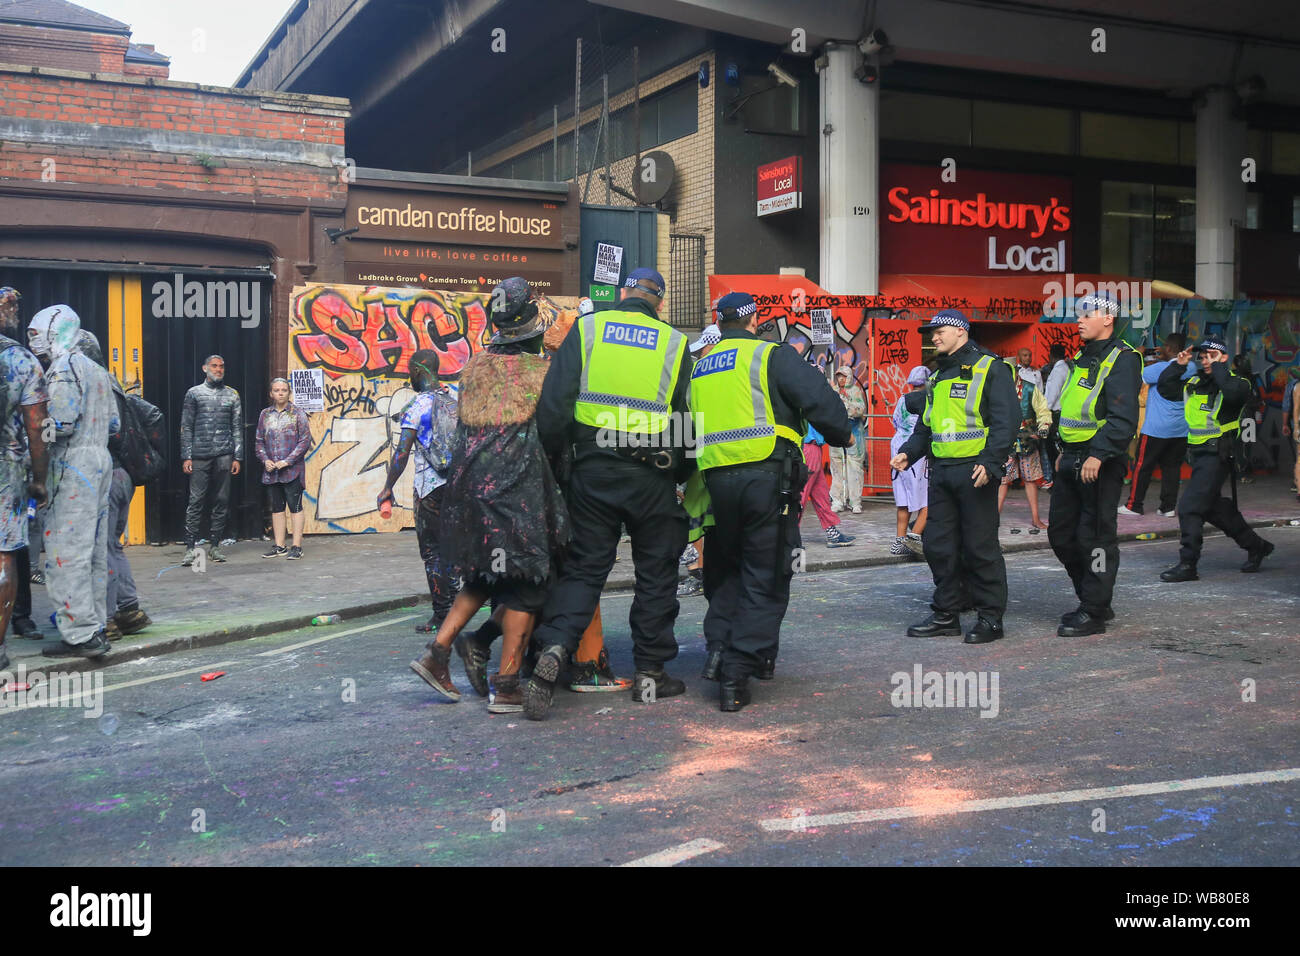 Notting Hill London Uk 25th August 2019 Police Arrest A